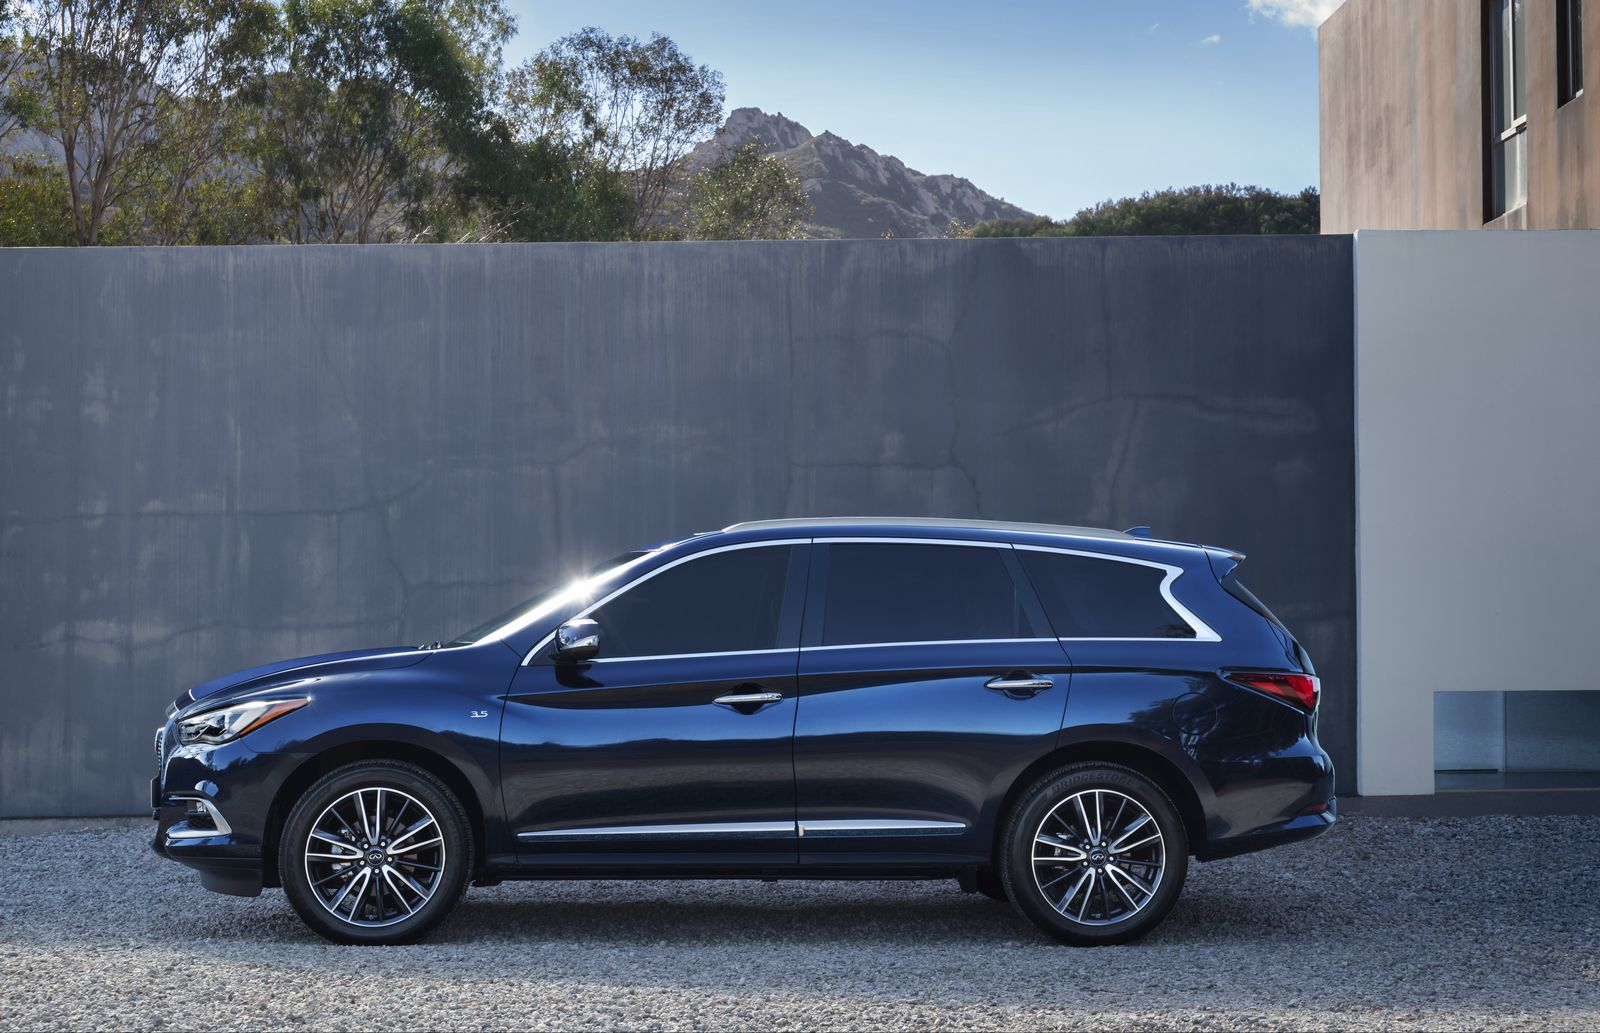 Junk Cars Detroit >> 2016 Infiniti QX60 Gets Attractive Refresh and Keeps Hybrid Engine - autoevolution